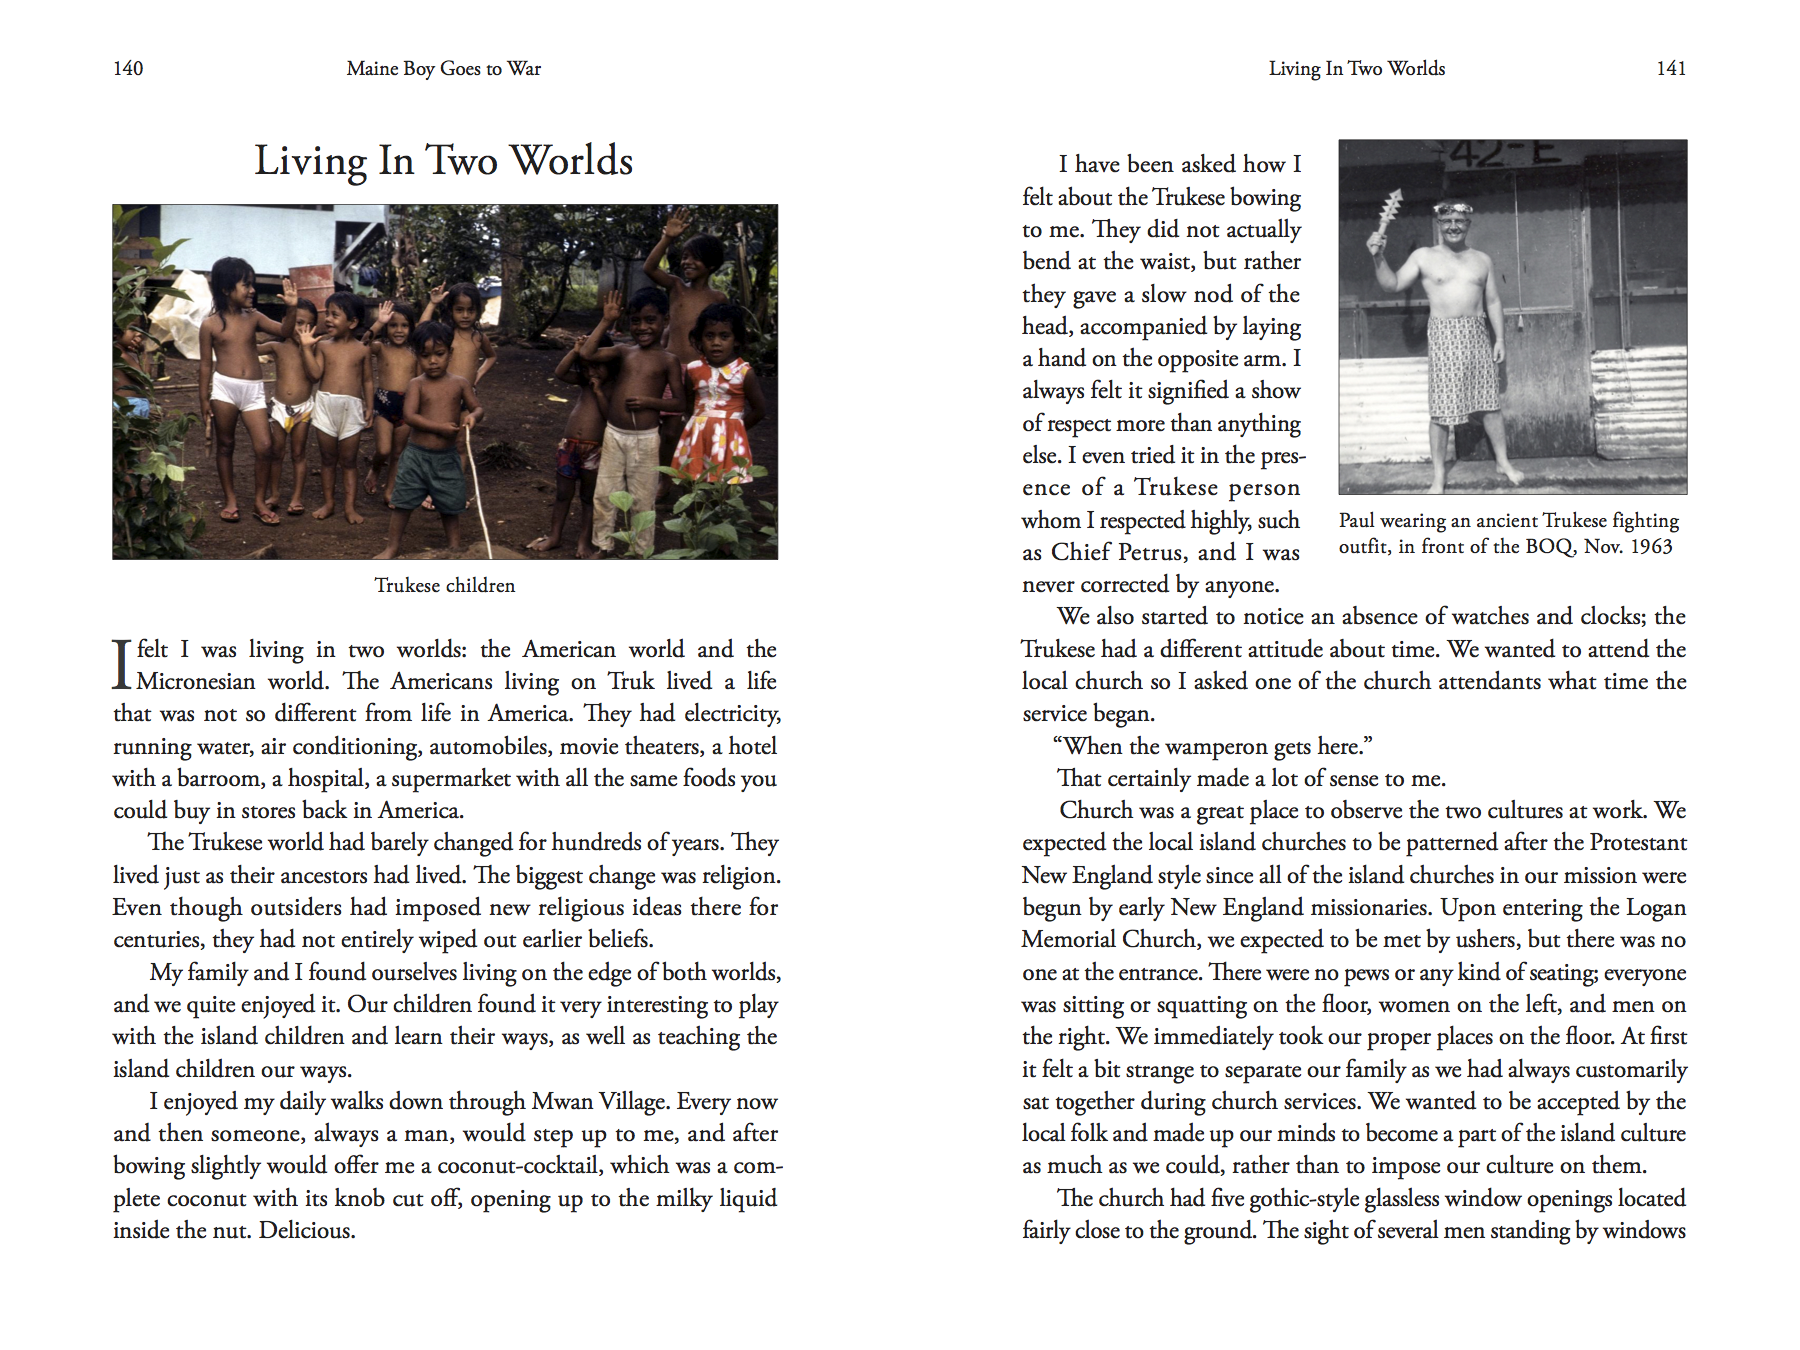 Pages from Paul Marshall's book  Maine Boy Goes to War: and the Story of Mizpah .